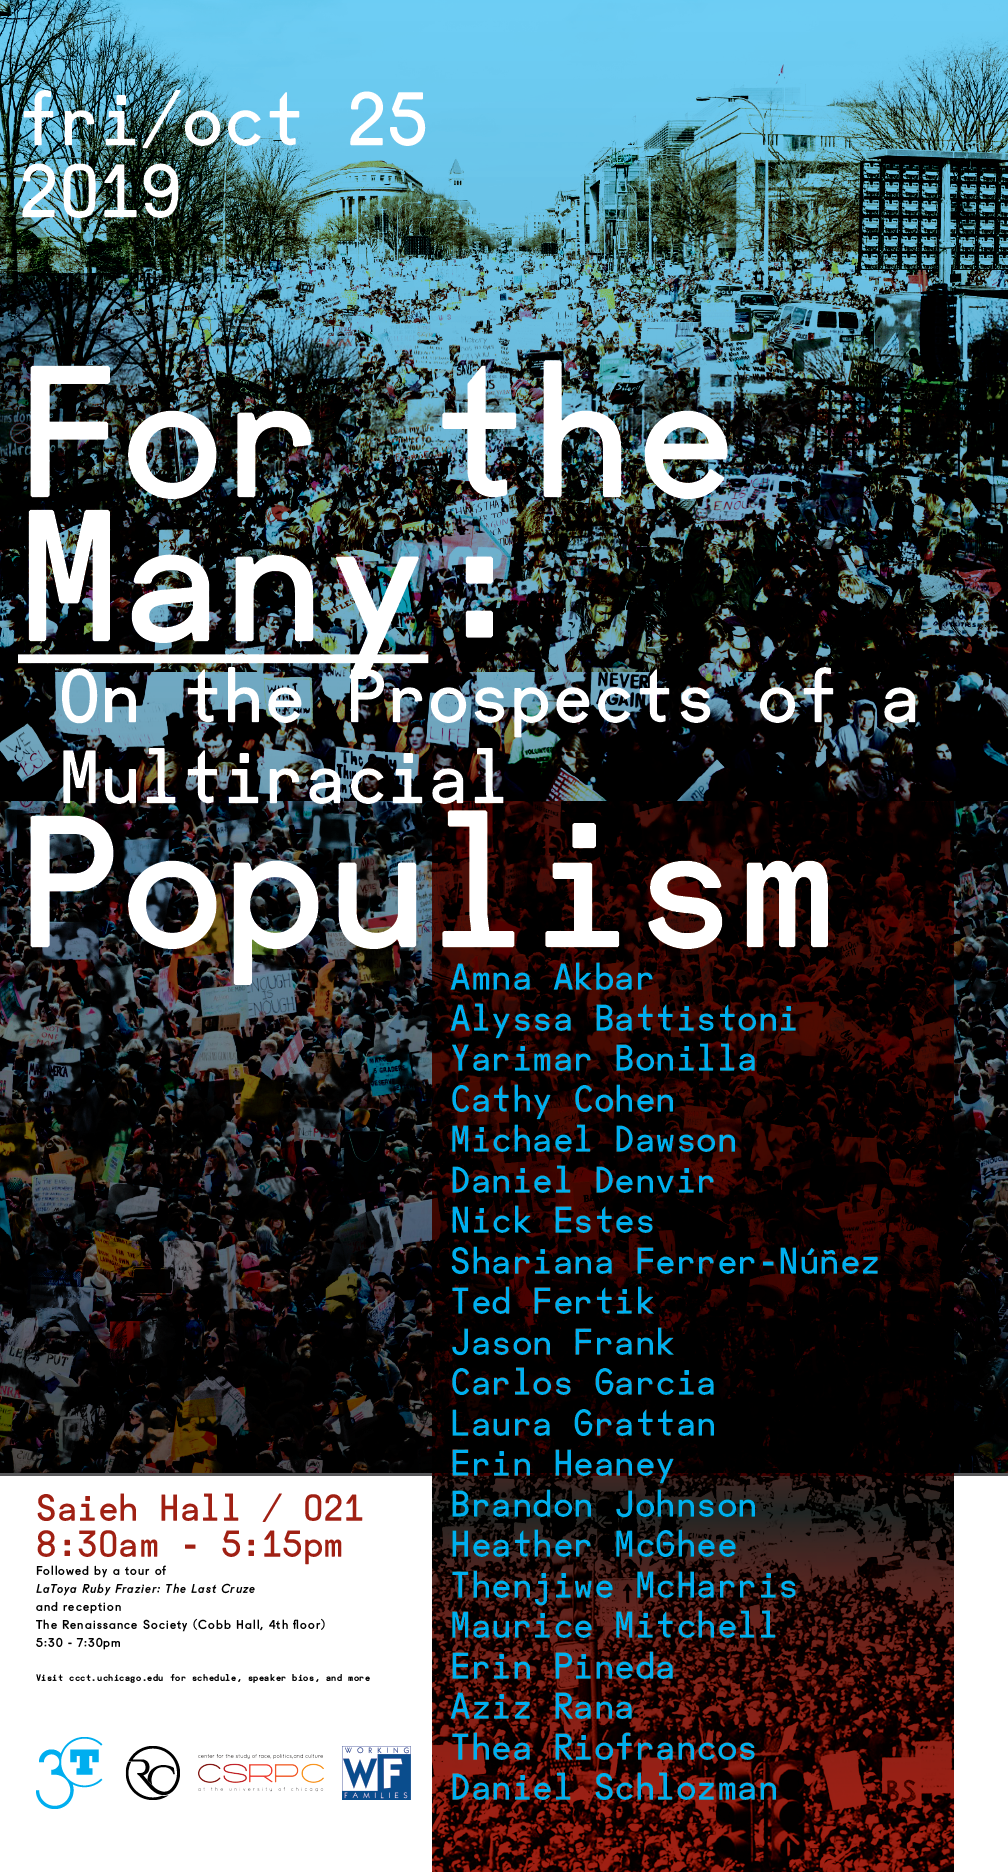 event poster for Multiracial Populism featuring crowd scene overlaid with text